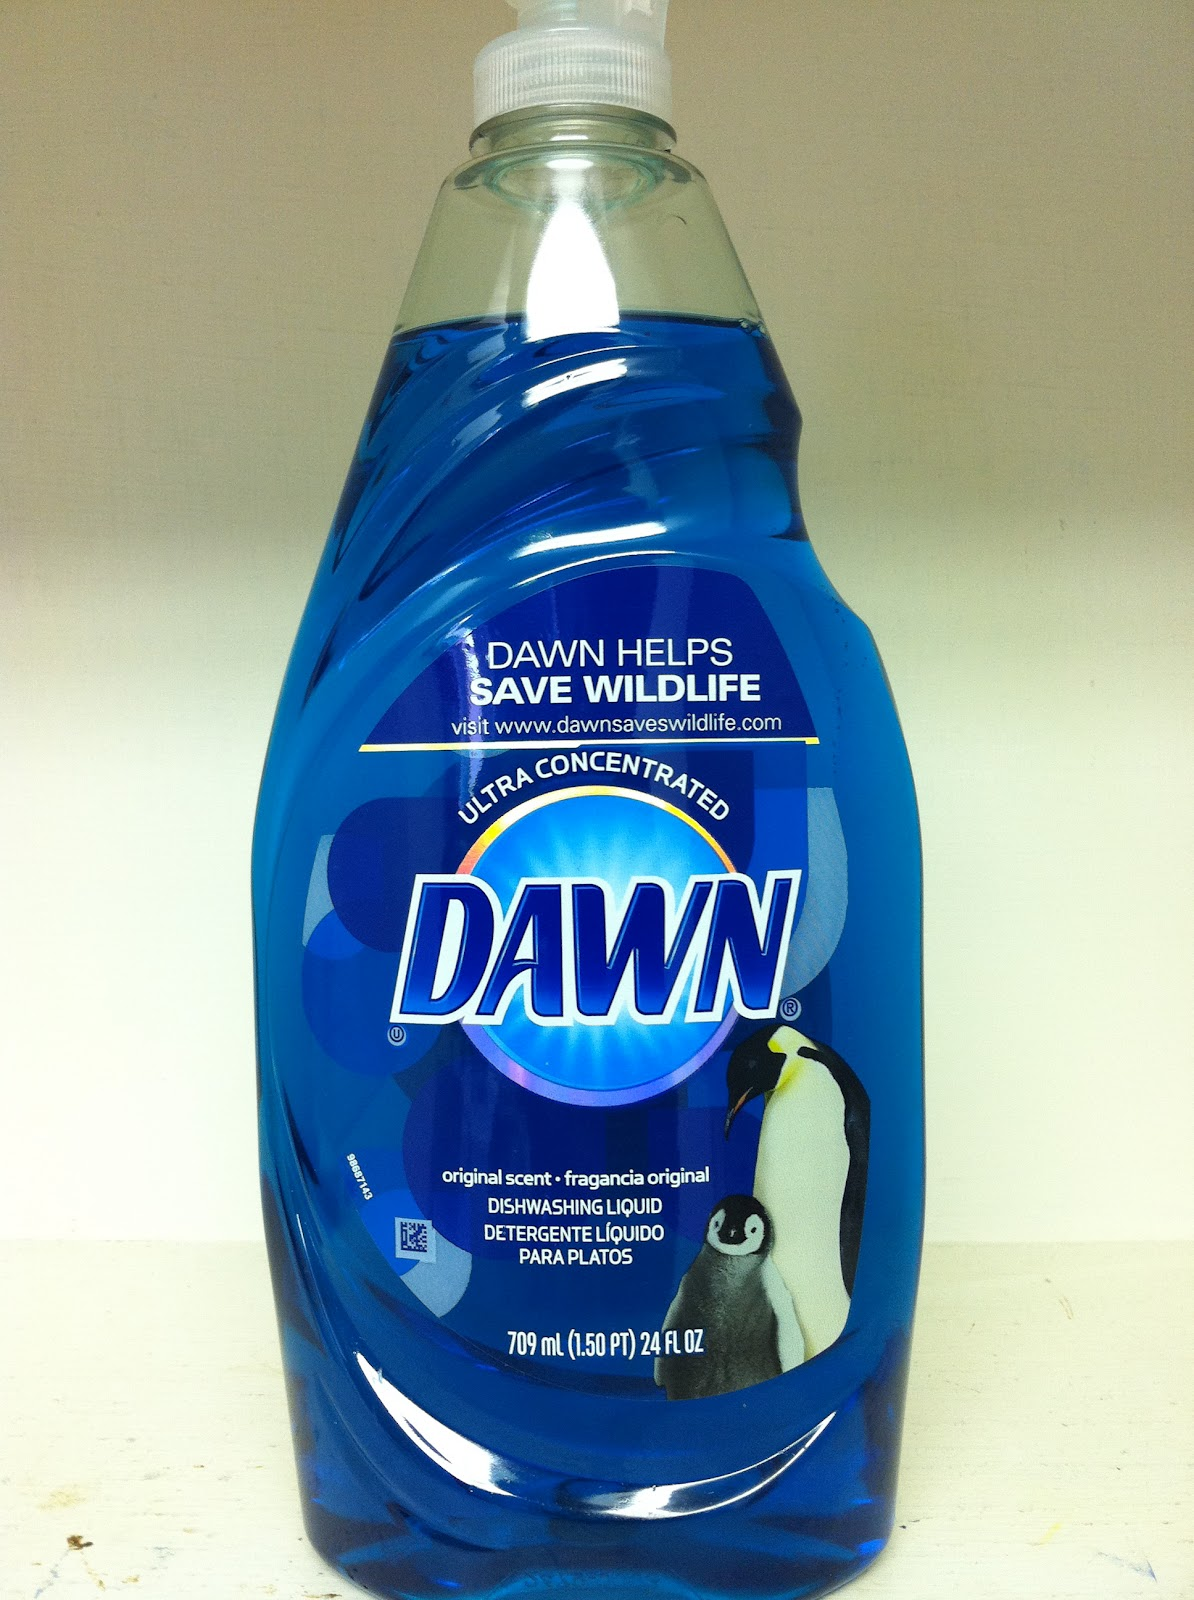 I choose to use the original Dawn because I like to put my dishwashing liquid in a decorative bottle by my kitchen sink. This product is thinner than the Dawn Ultra Concentrated so it flows through my